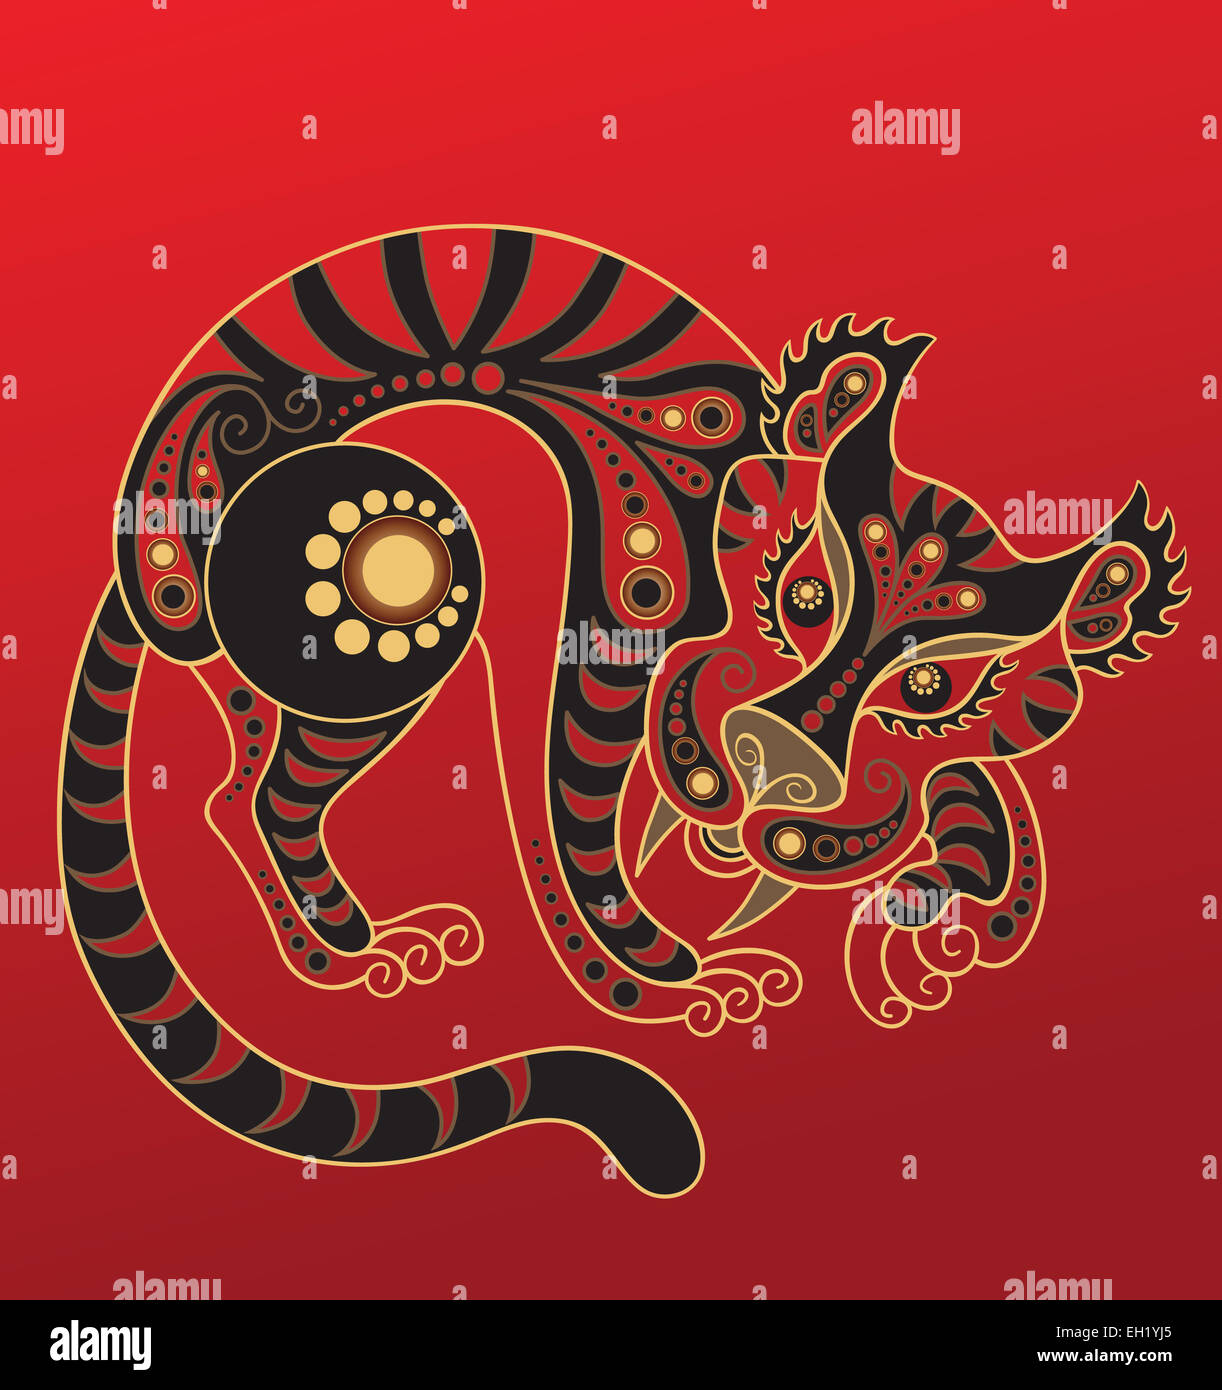 Chinese horoscope. Year of the tiger - Stock Image